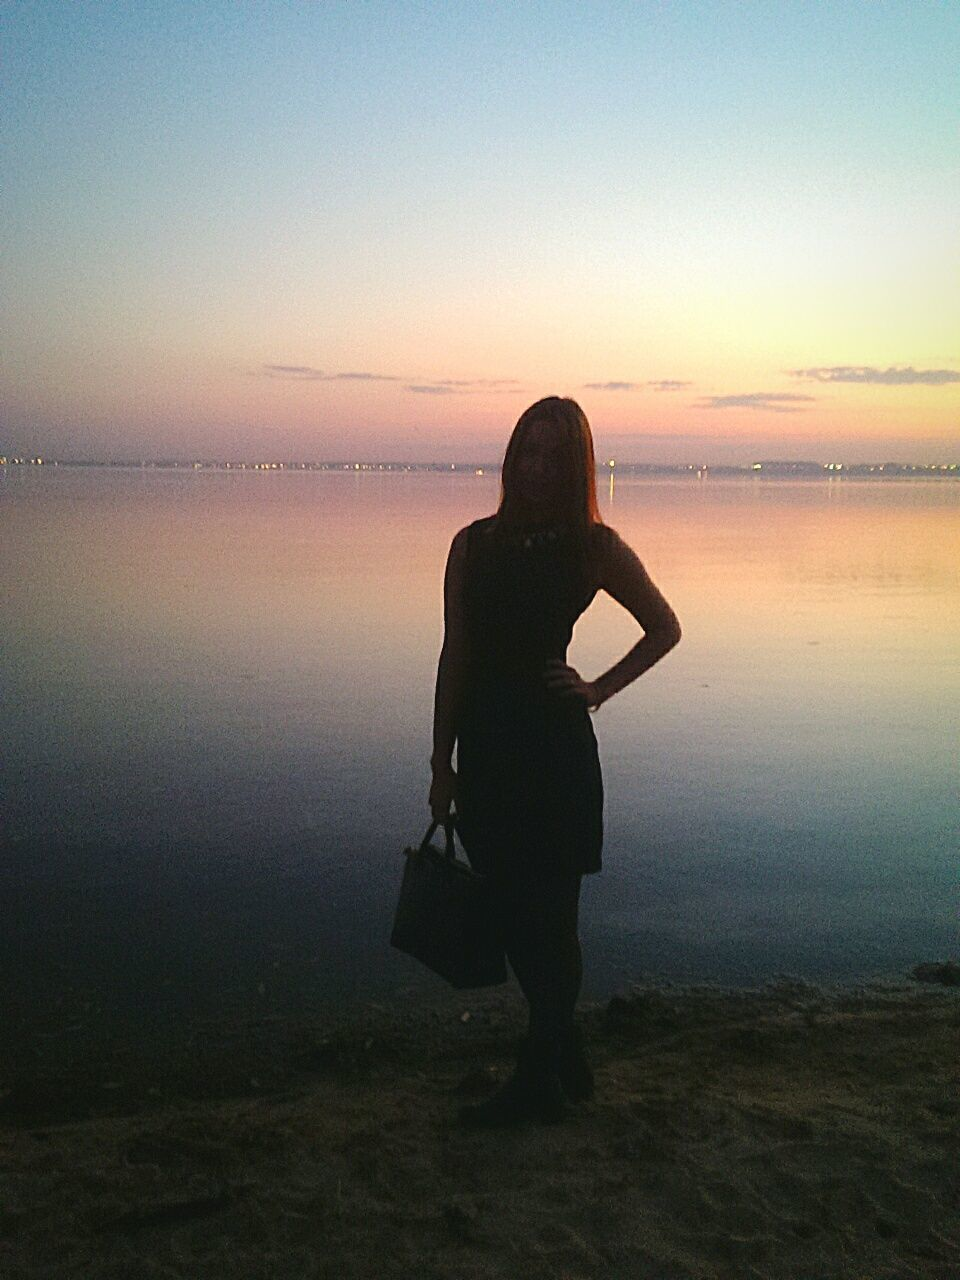 sunset, water, sea, sky, beach, nature, silhouette, horizon over water, full length, beauty in nature, scenics, one person, tranquility, reflection, clear sky, real people, outdoors, women, young adult, day, people